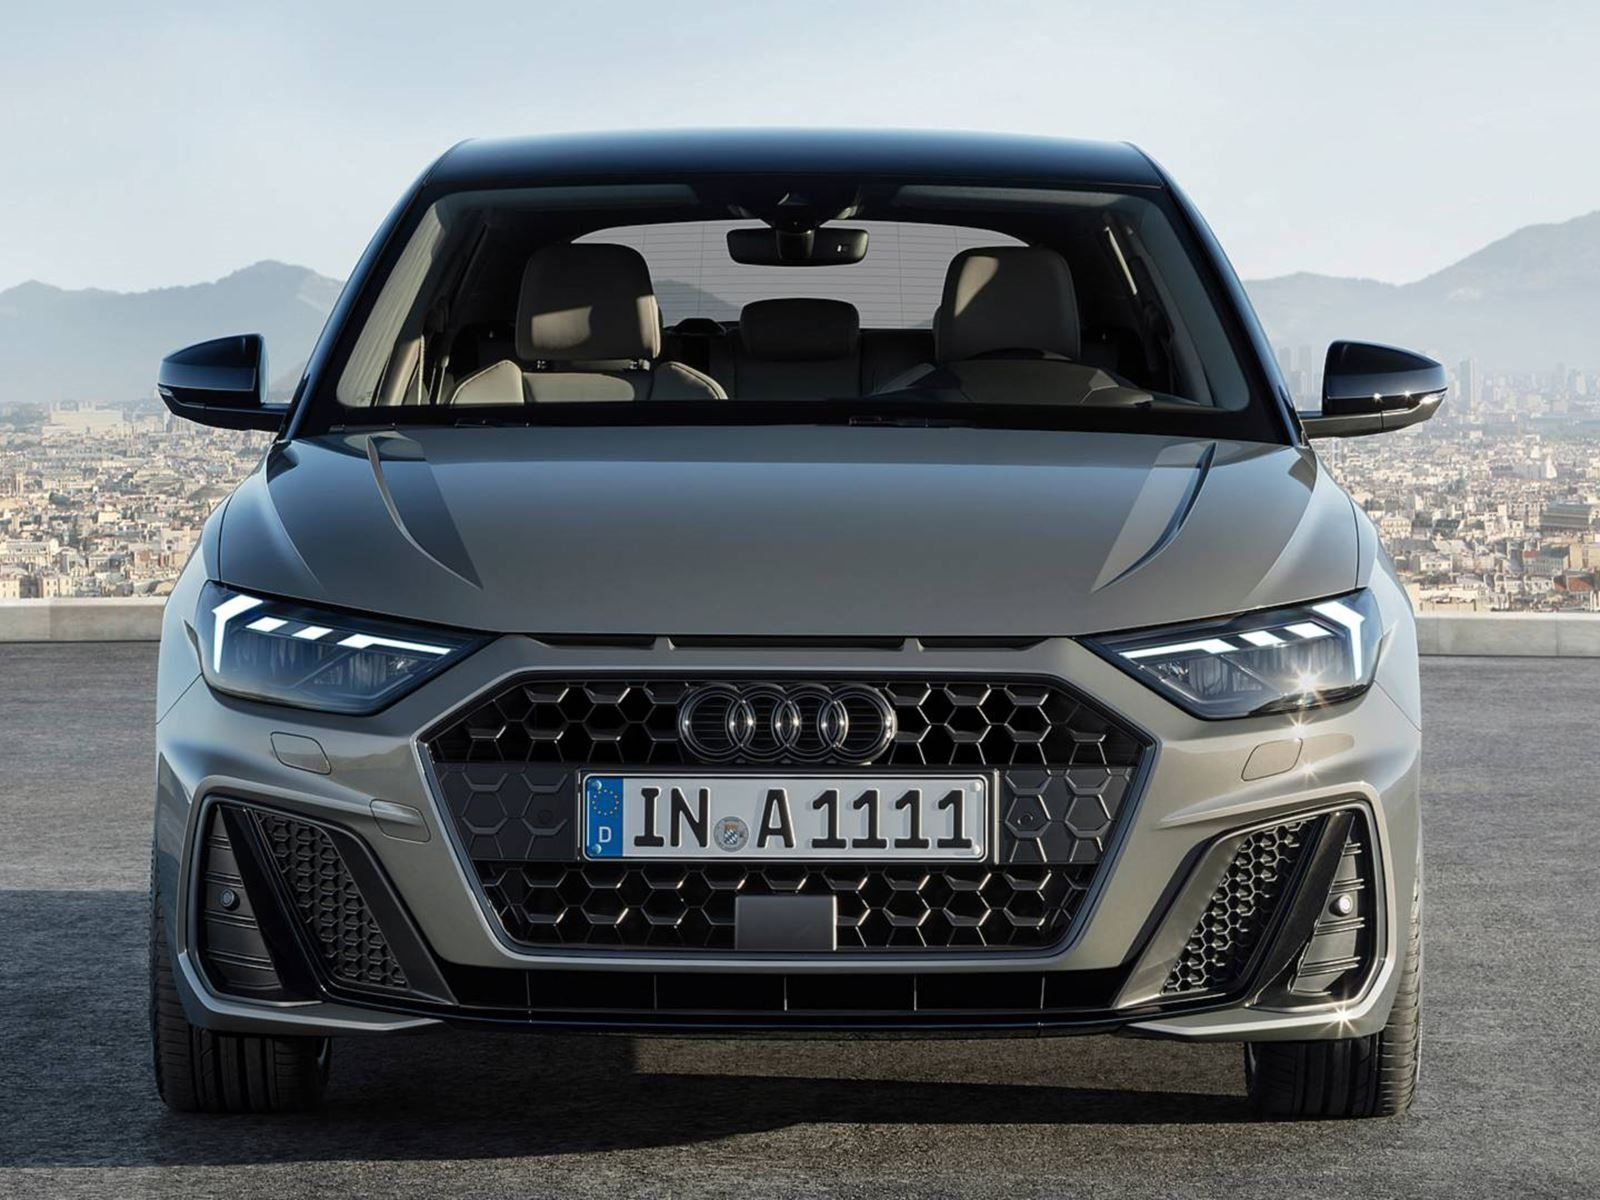 New Audi A1 Revealed Causing Speculation About S1 Packing 250 Hp 186 Kw Audi A1 Audi A1 Sportback Audi Sportback